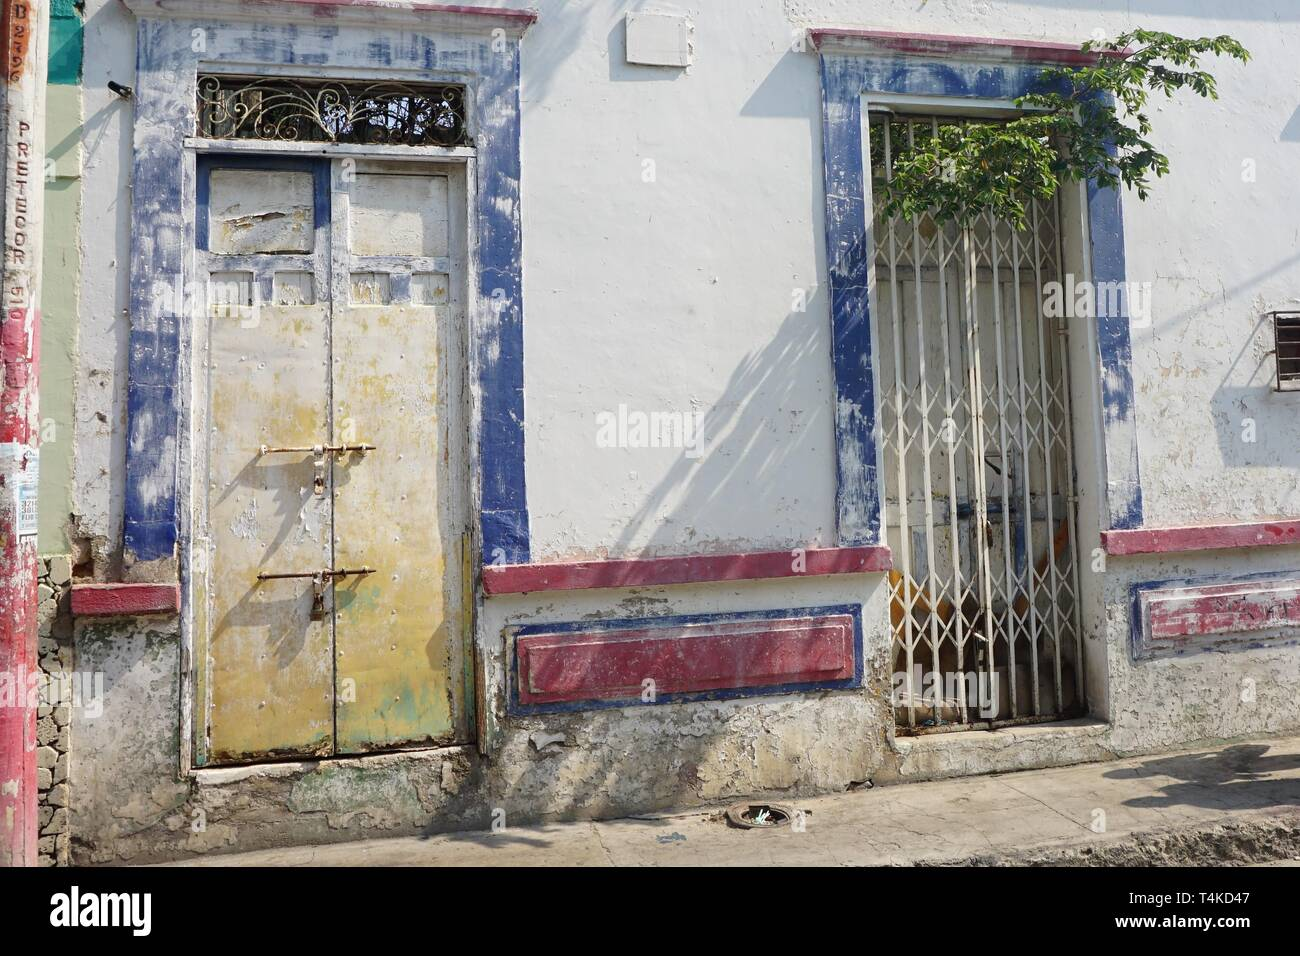 Close Up of a Caribbean Building that has seen Better Days - Stock Image